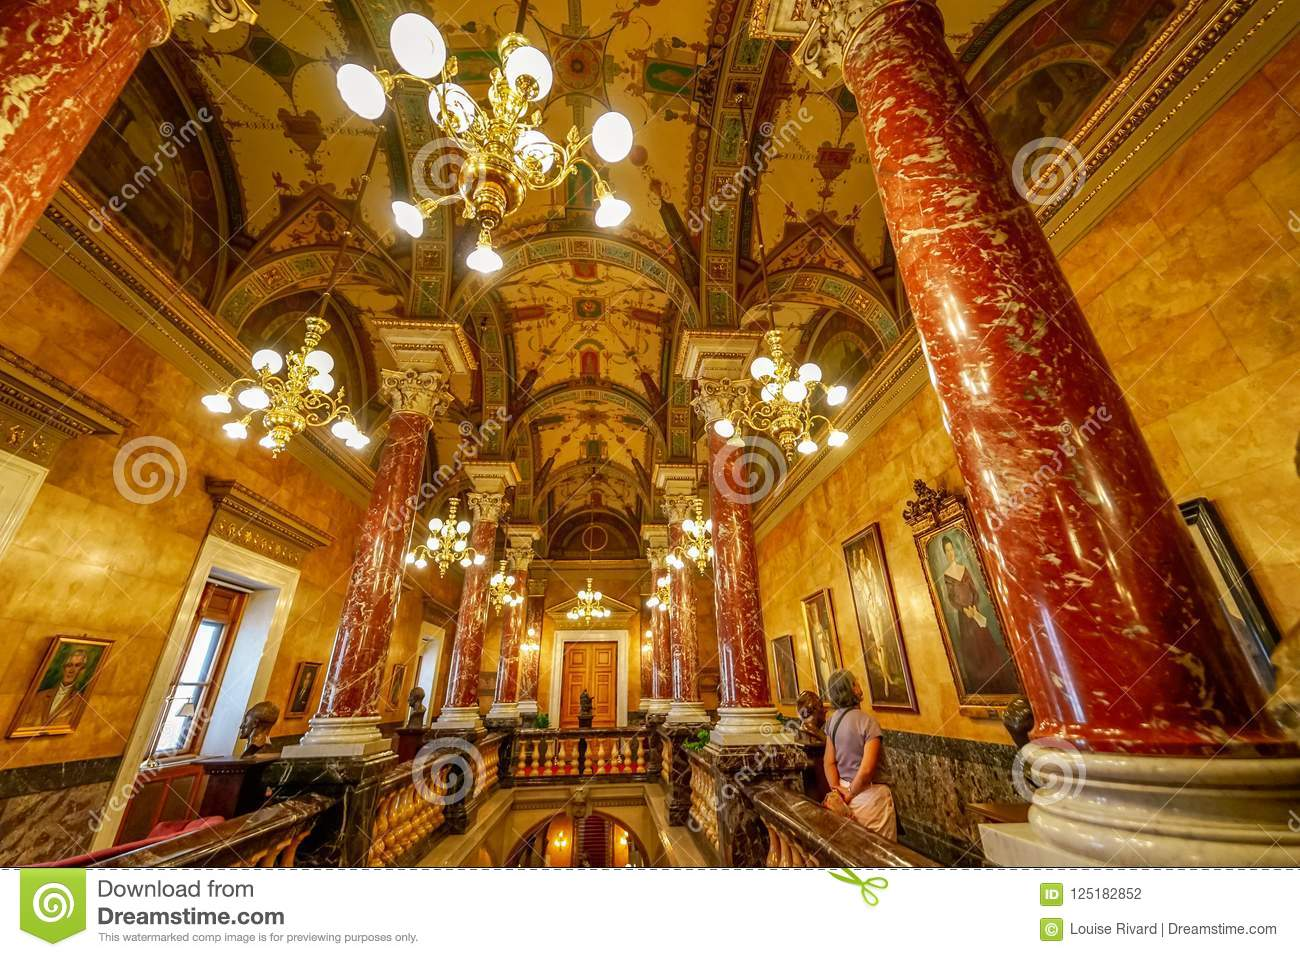 Guided tour at Budapest opera